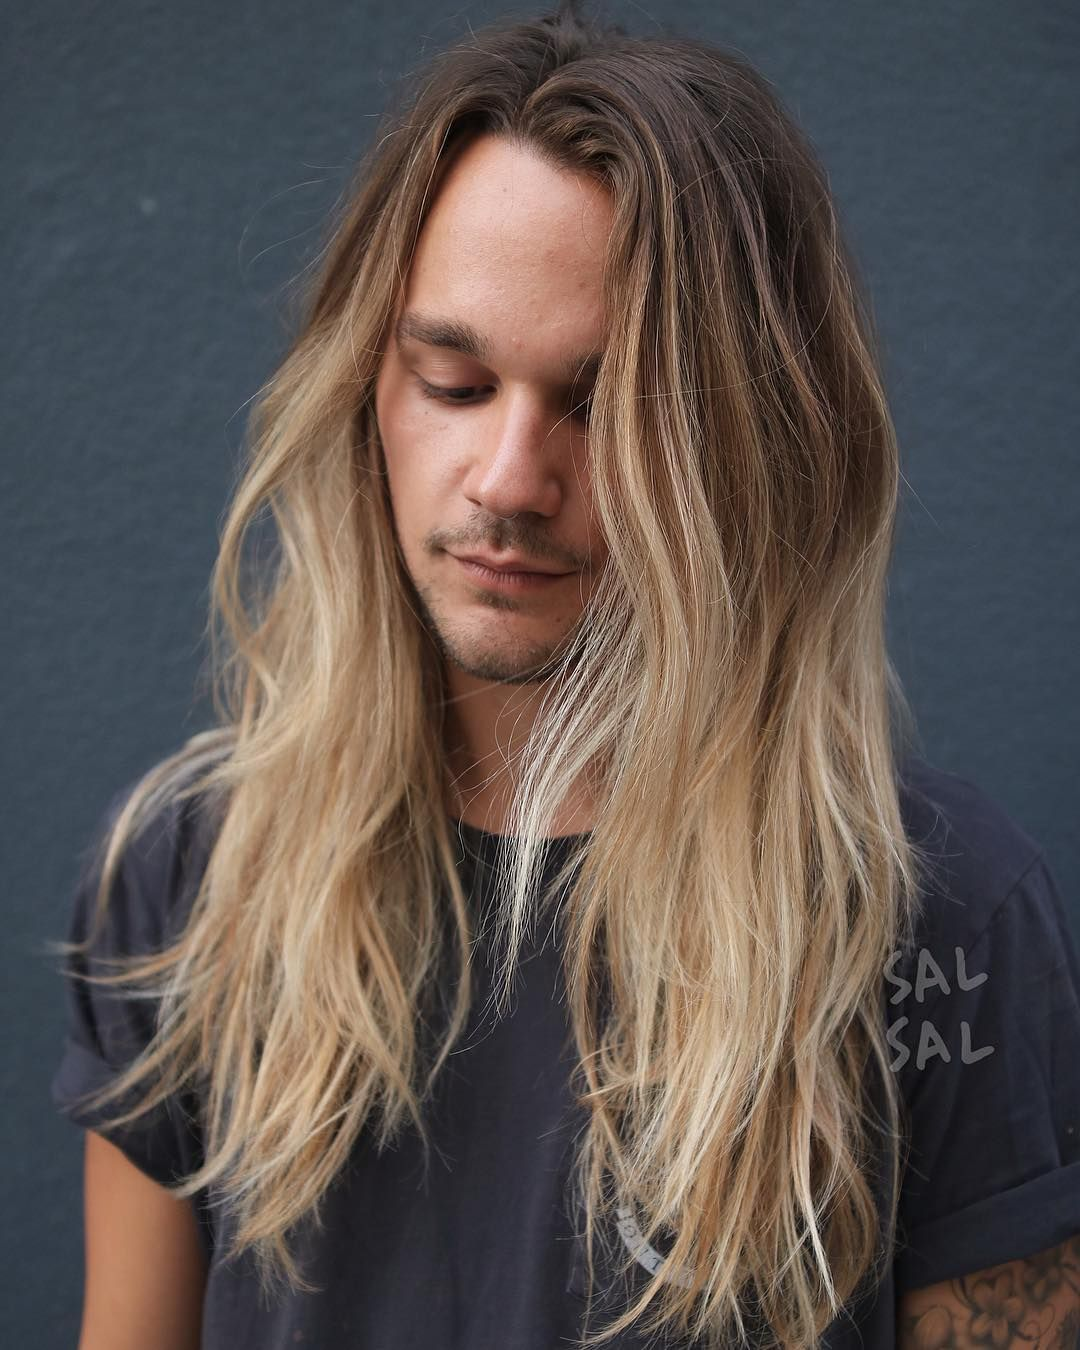 25 Long Hair Hairstyles Haircuts For Men 2020 Styles Long Hair Styles Men Long Hair Styles Cool Hairstyles For Men